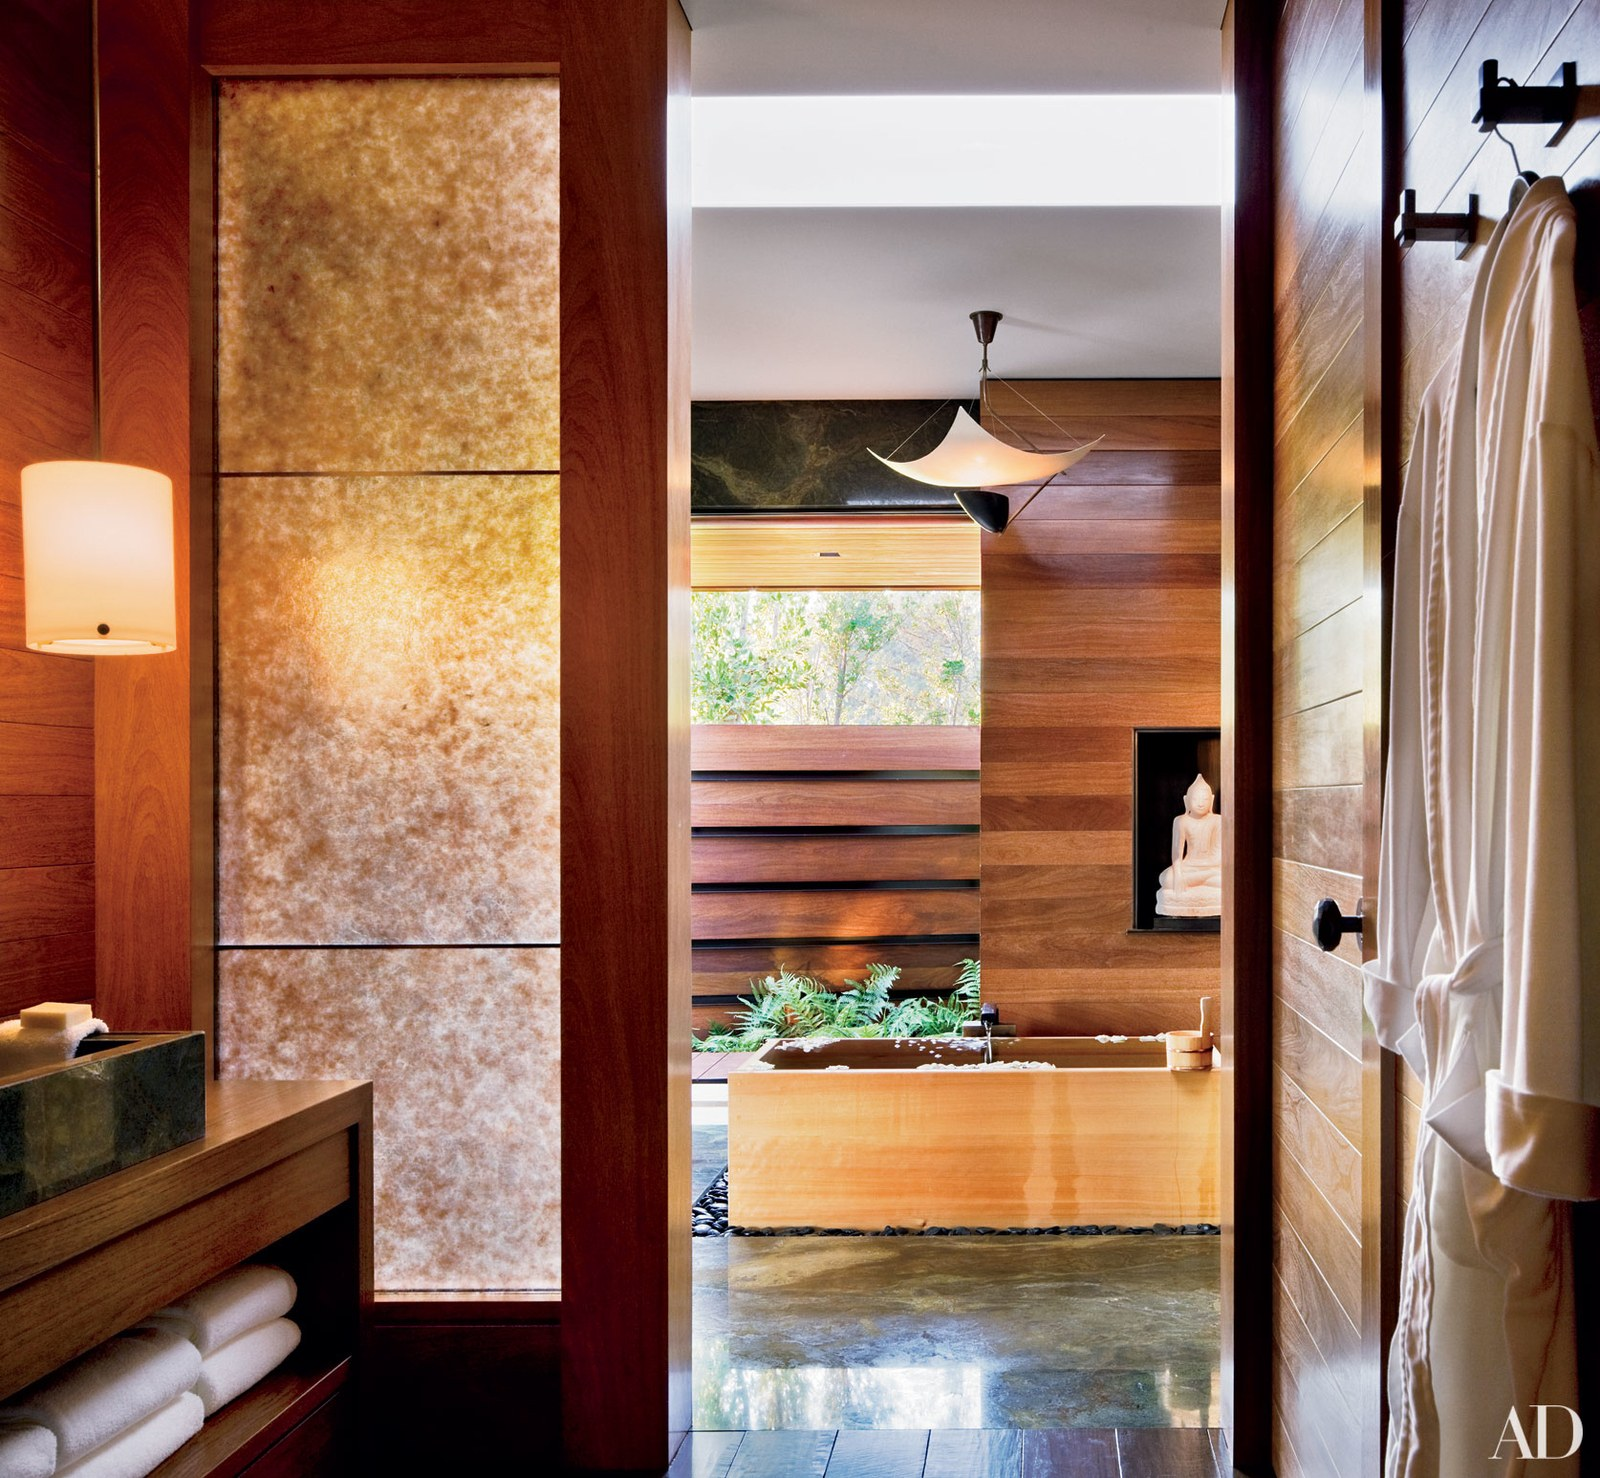 Celebrity Bathrooms You Need To See celebrity bathrooms 5 Celebrity Bathrooms You Need To See Celebrity Bathrooms You Need To See